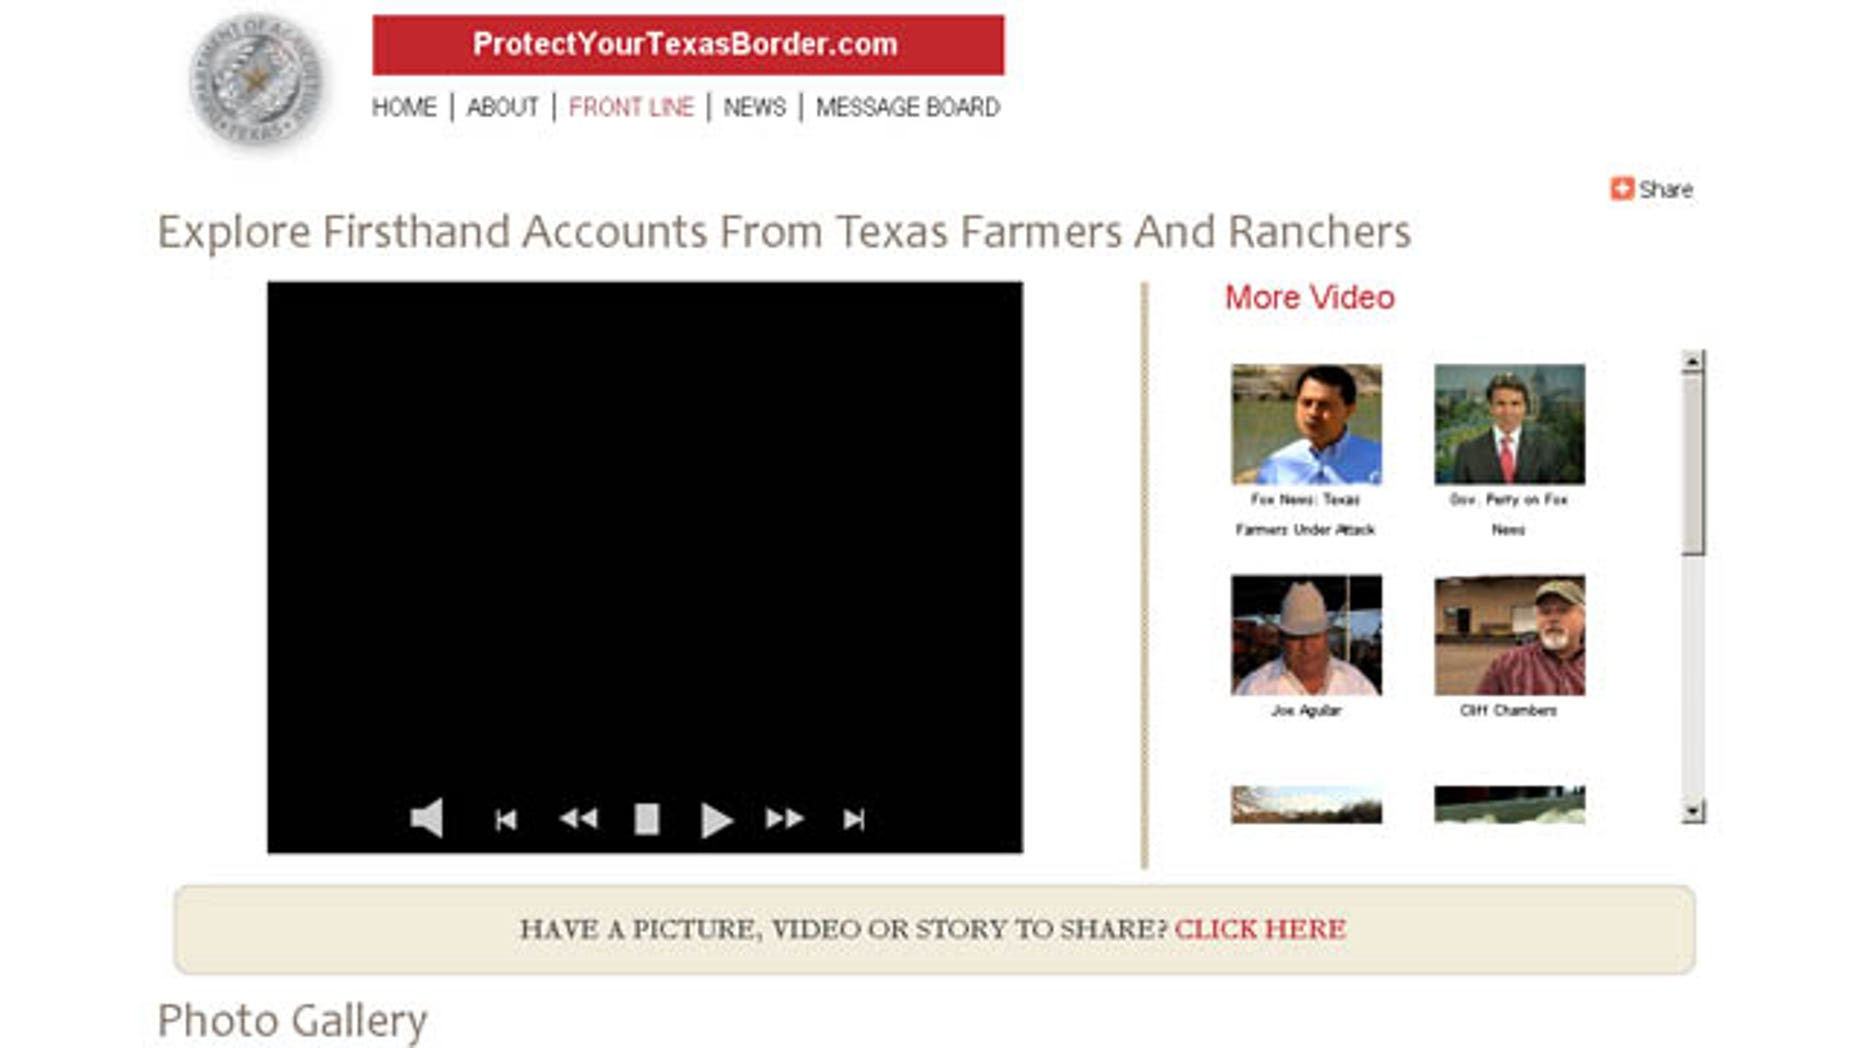 Image of the website ProtectYourTexasBorder.com